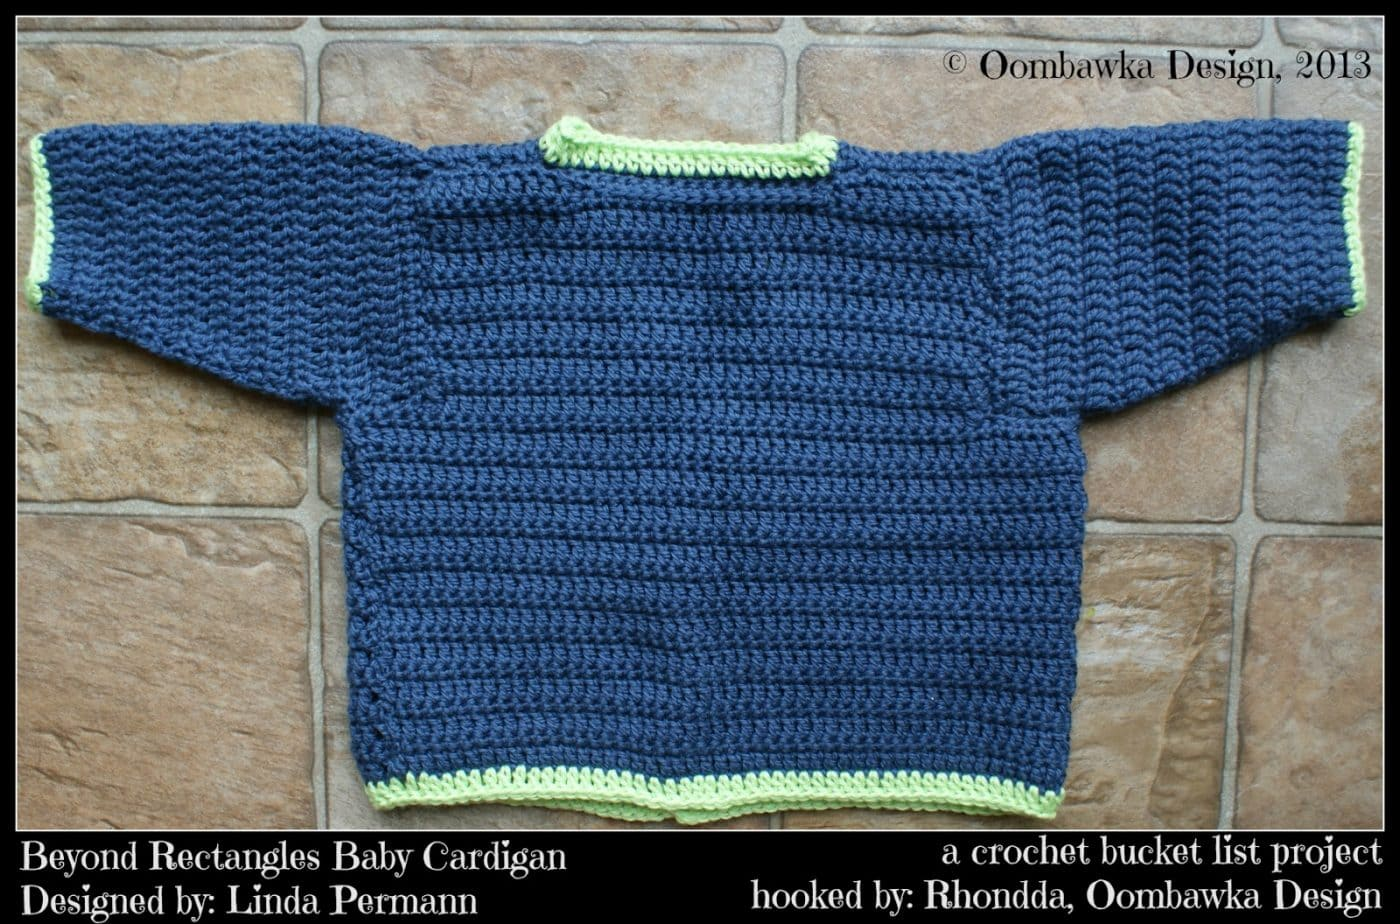 2d384247c5c3 A Crochet Bucket List Project - Beyond Rectangles Baby Cardigan ...